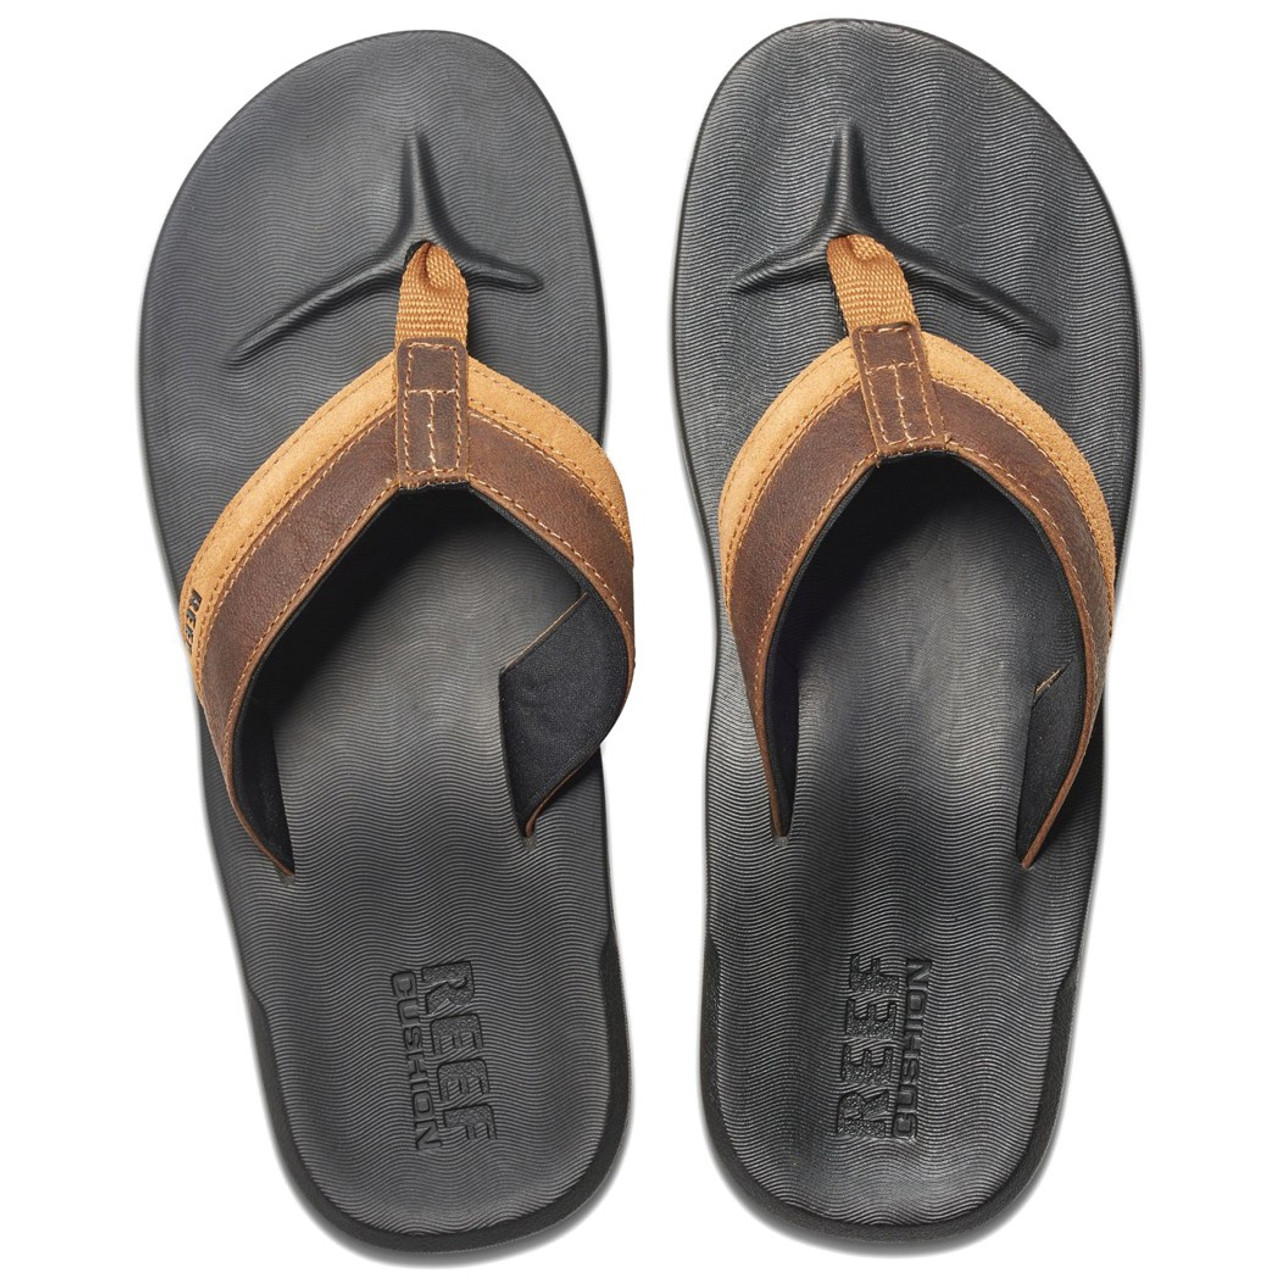 4e2f8b08148b Reef Flip Flop - Contour Cushion LE - Black Brown - Surf and Dirt